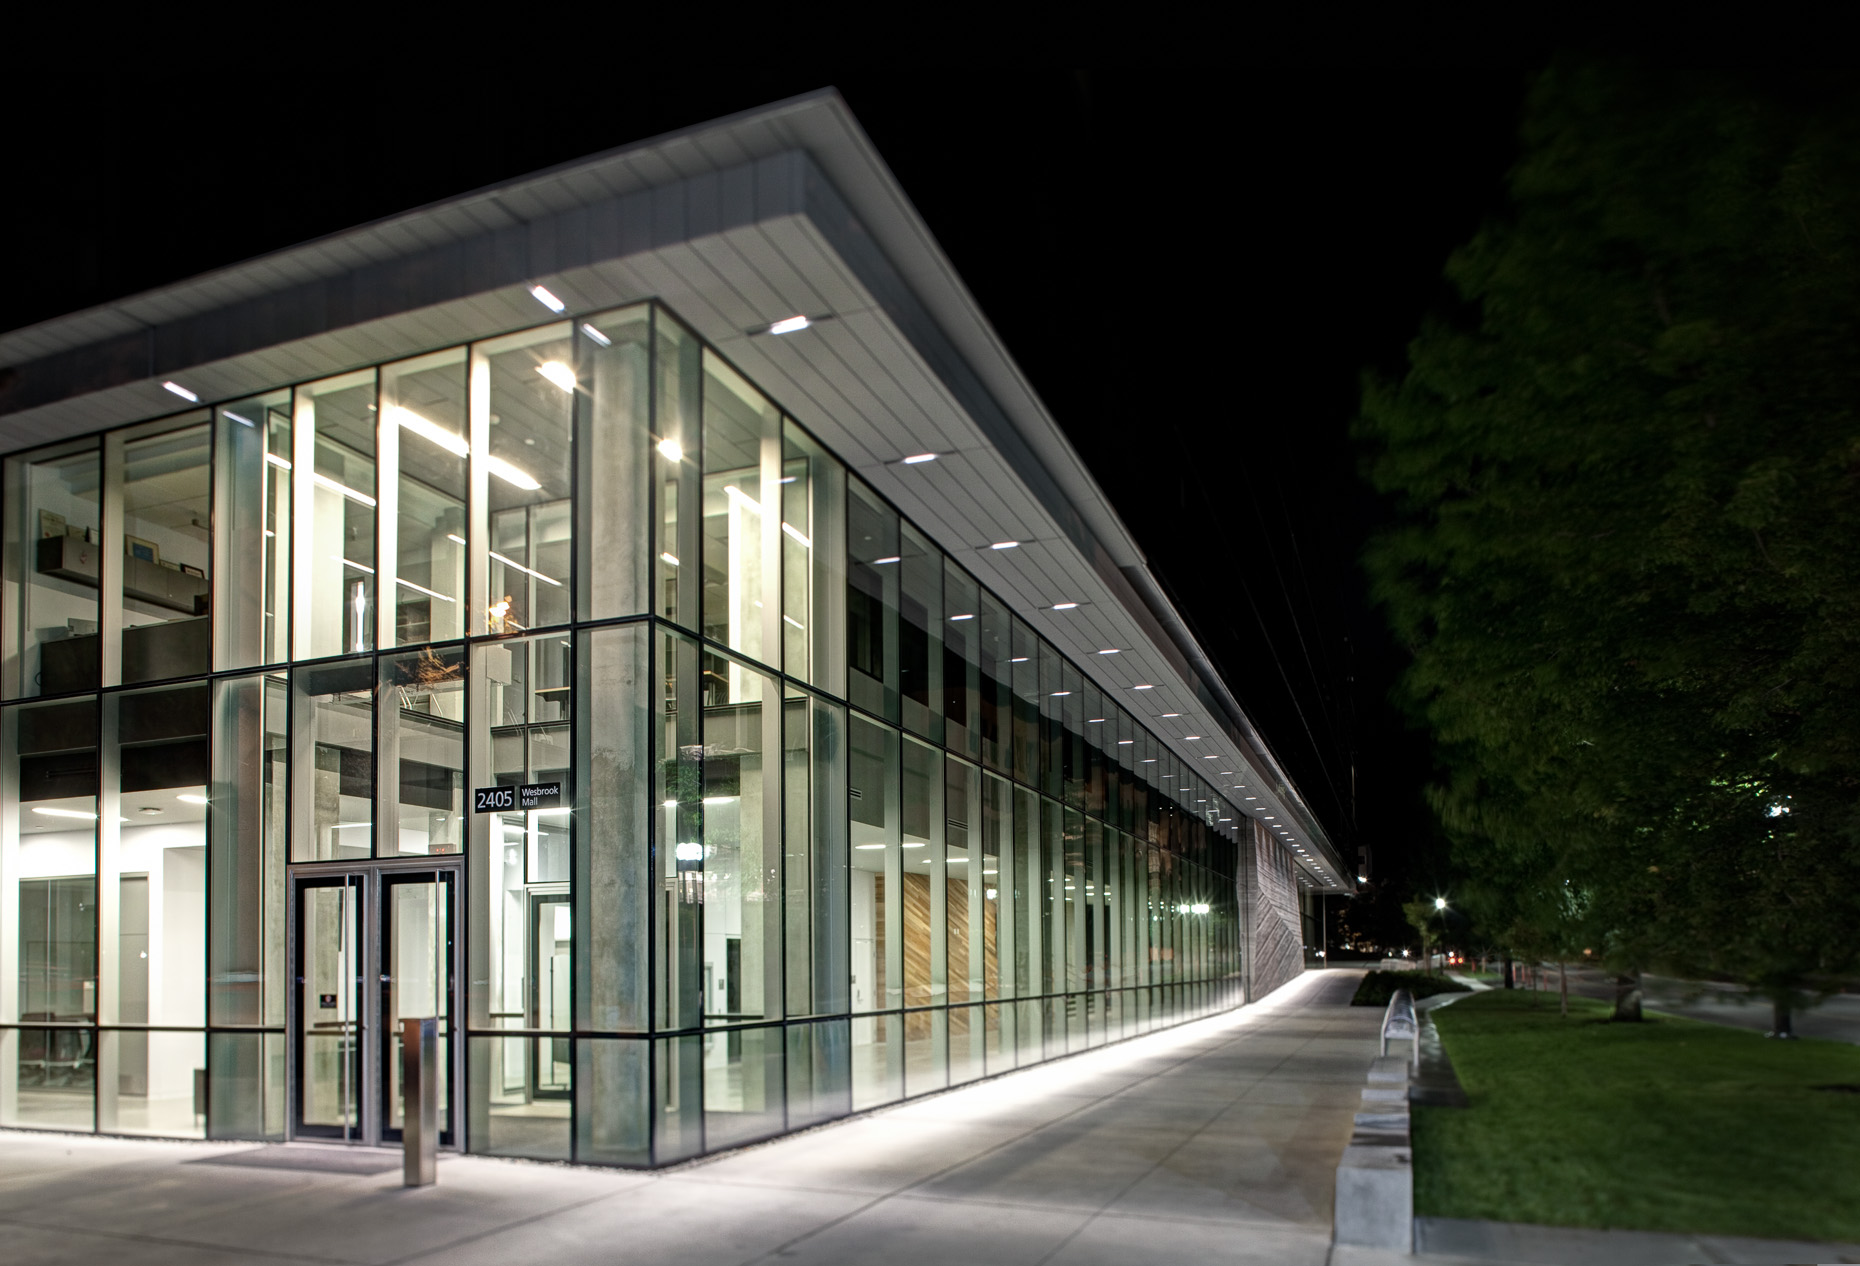 Ubc pharmaceutical building 4